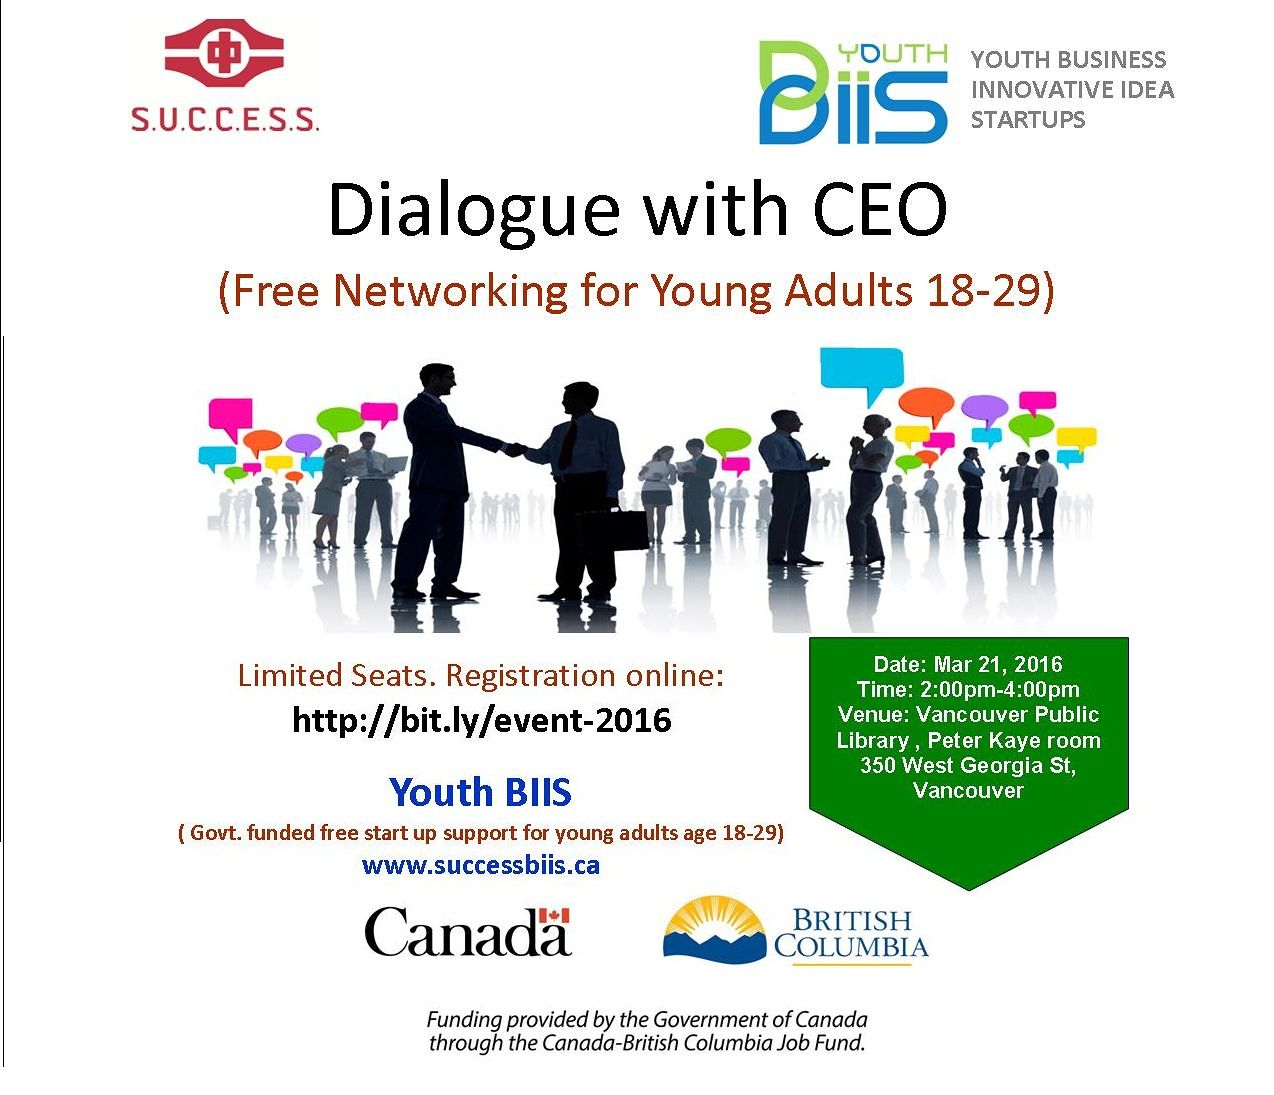 dialogue ceo networking for young adults  events dialogue ceo networking for young adults 18 29